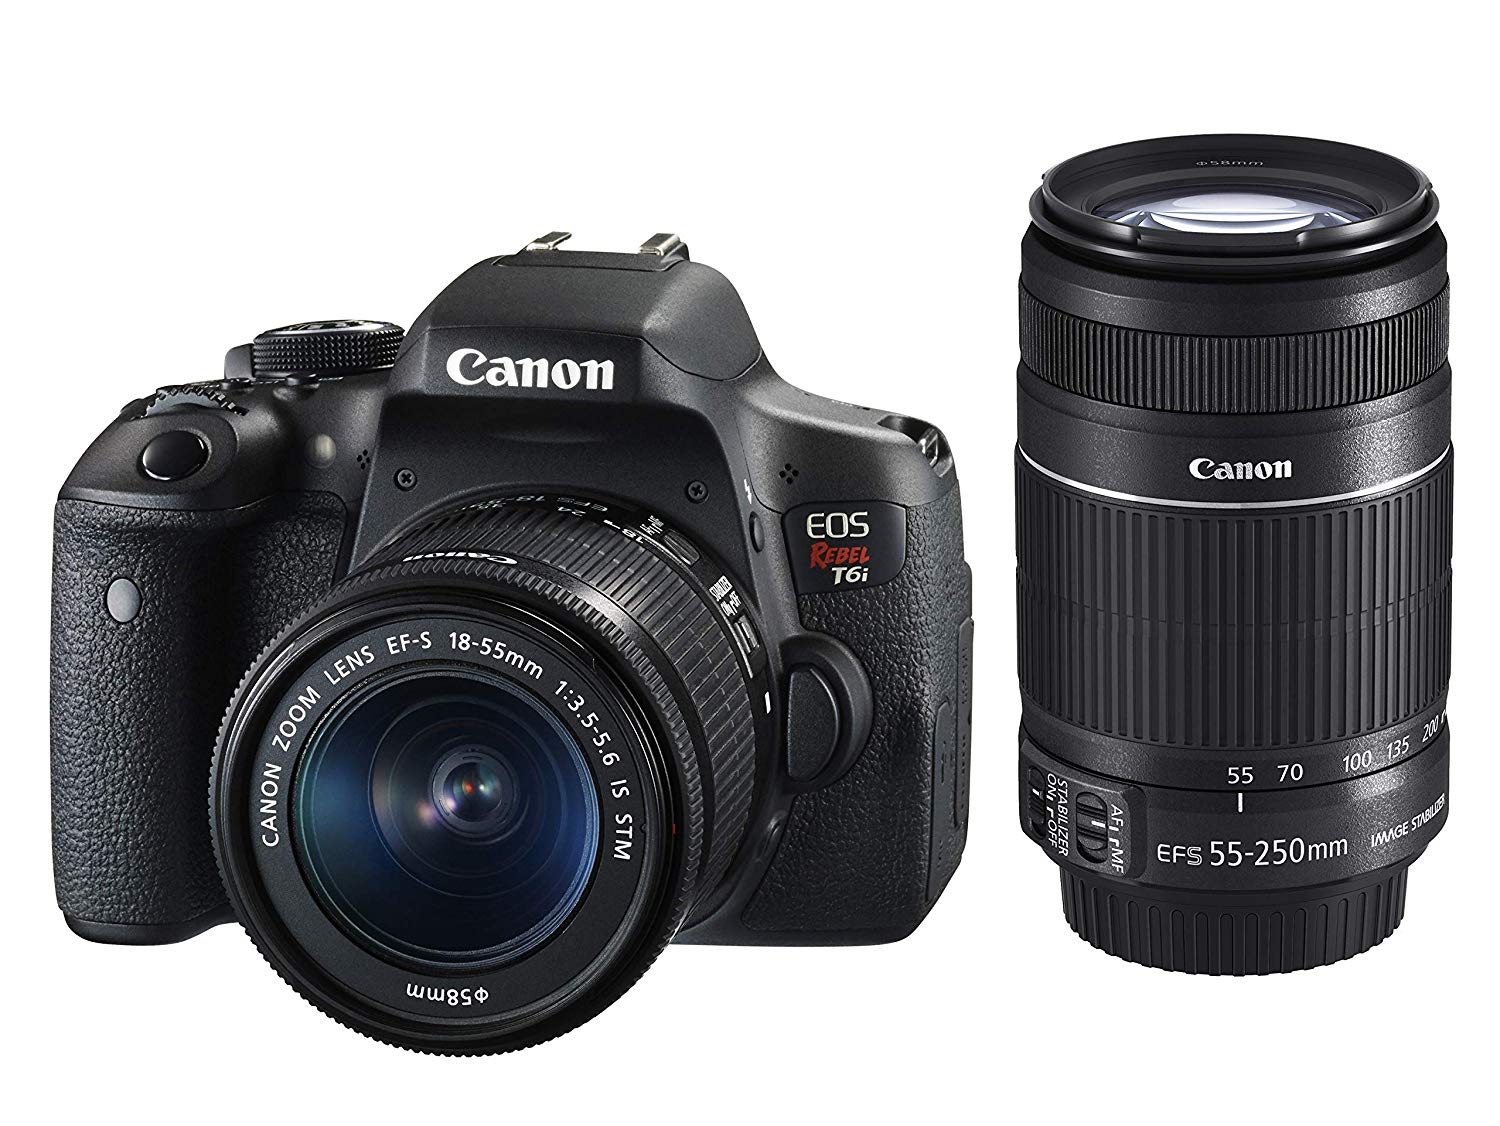 Kit Premium Canon Câmera Rebel T6i com Lente EF-S 18-55mm f/3.5-5.6 IS STM e EF-S 55-250mm f/4-5.6 IS STM